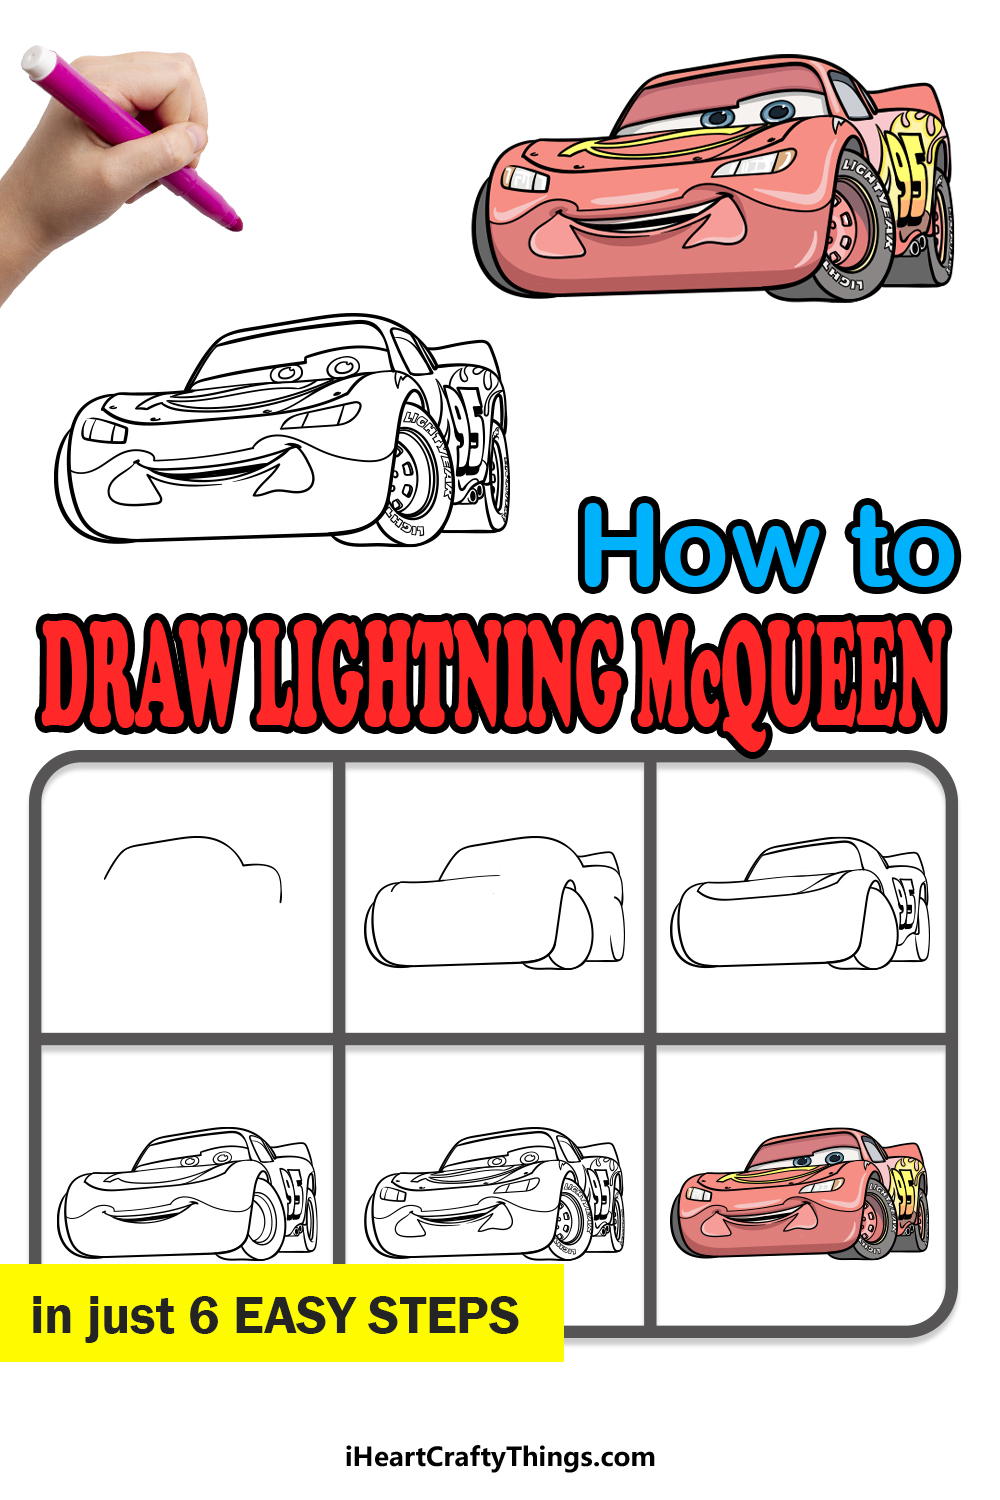 how to draw Lightning McQueen in 6 easy steps